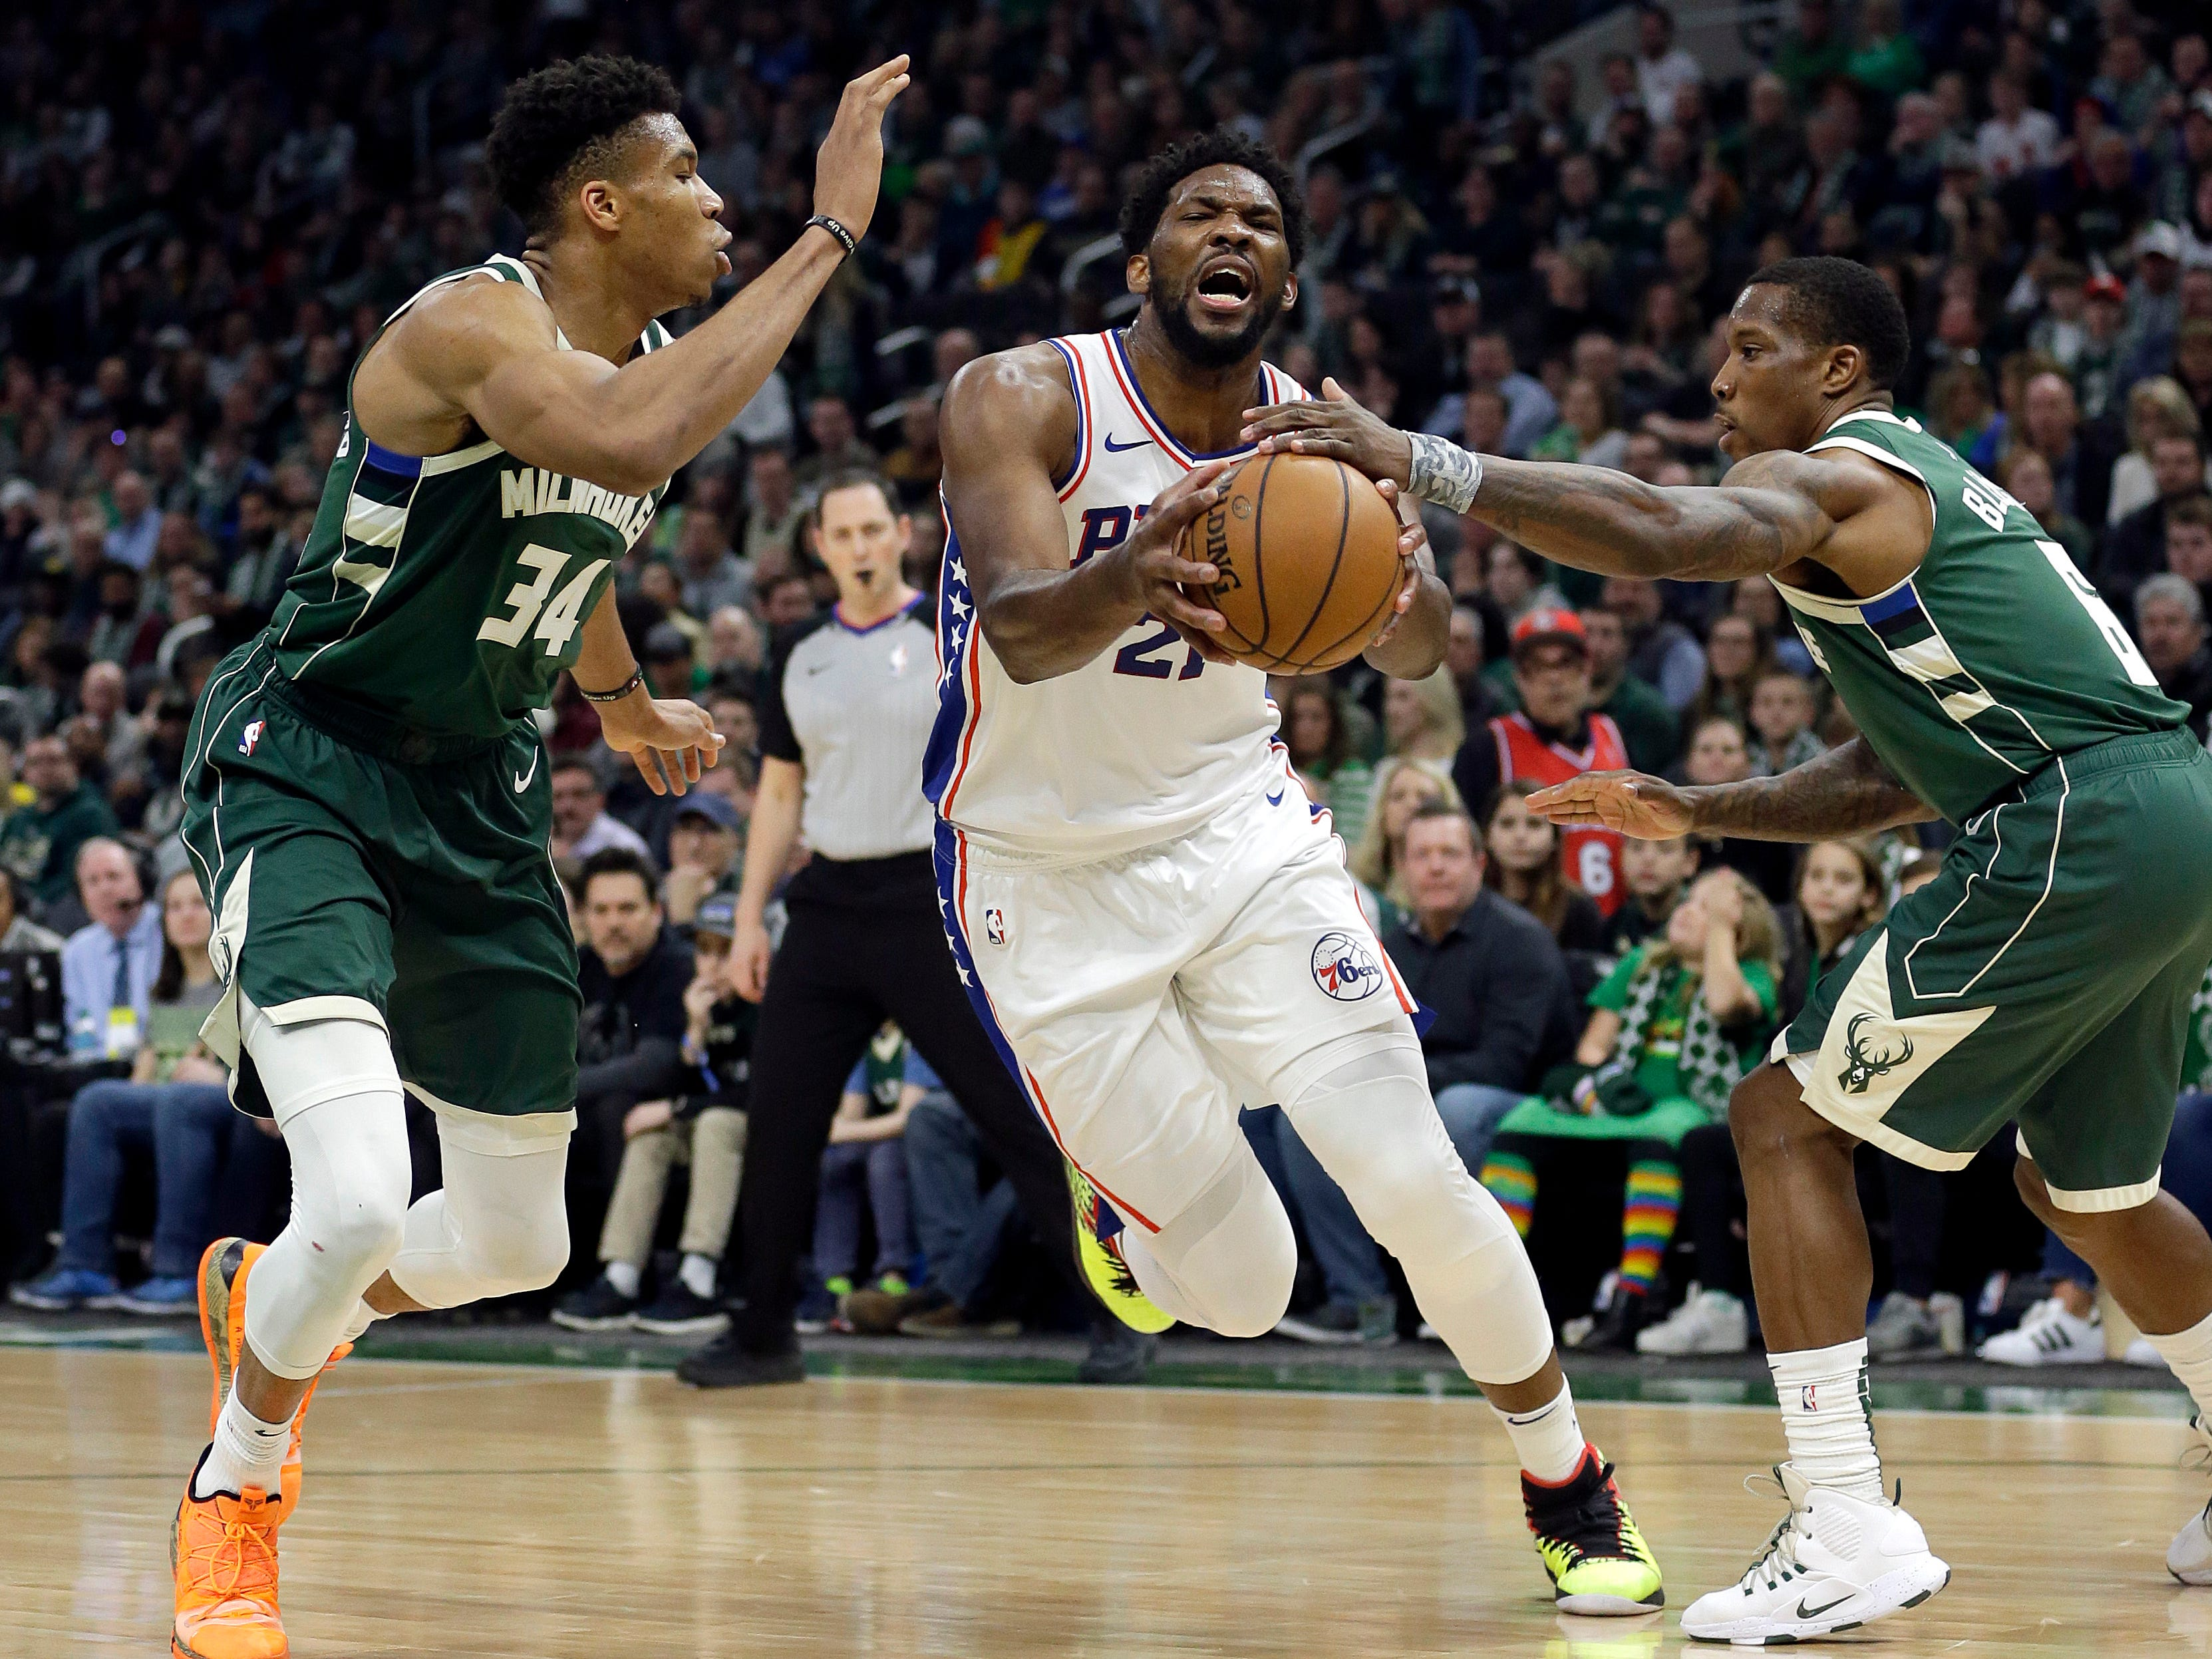 Sixer center Philadelphia 76ers' Joel Embiid drives between the Bucks' Giannis Antetokounmpo and Eric Bledsoe during the first half.